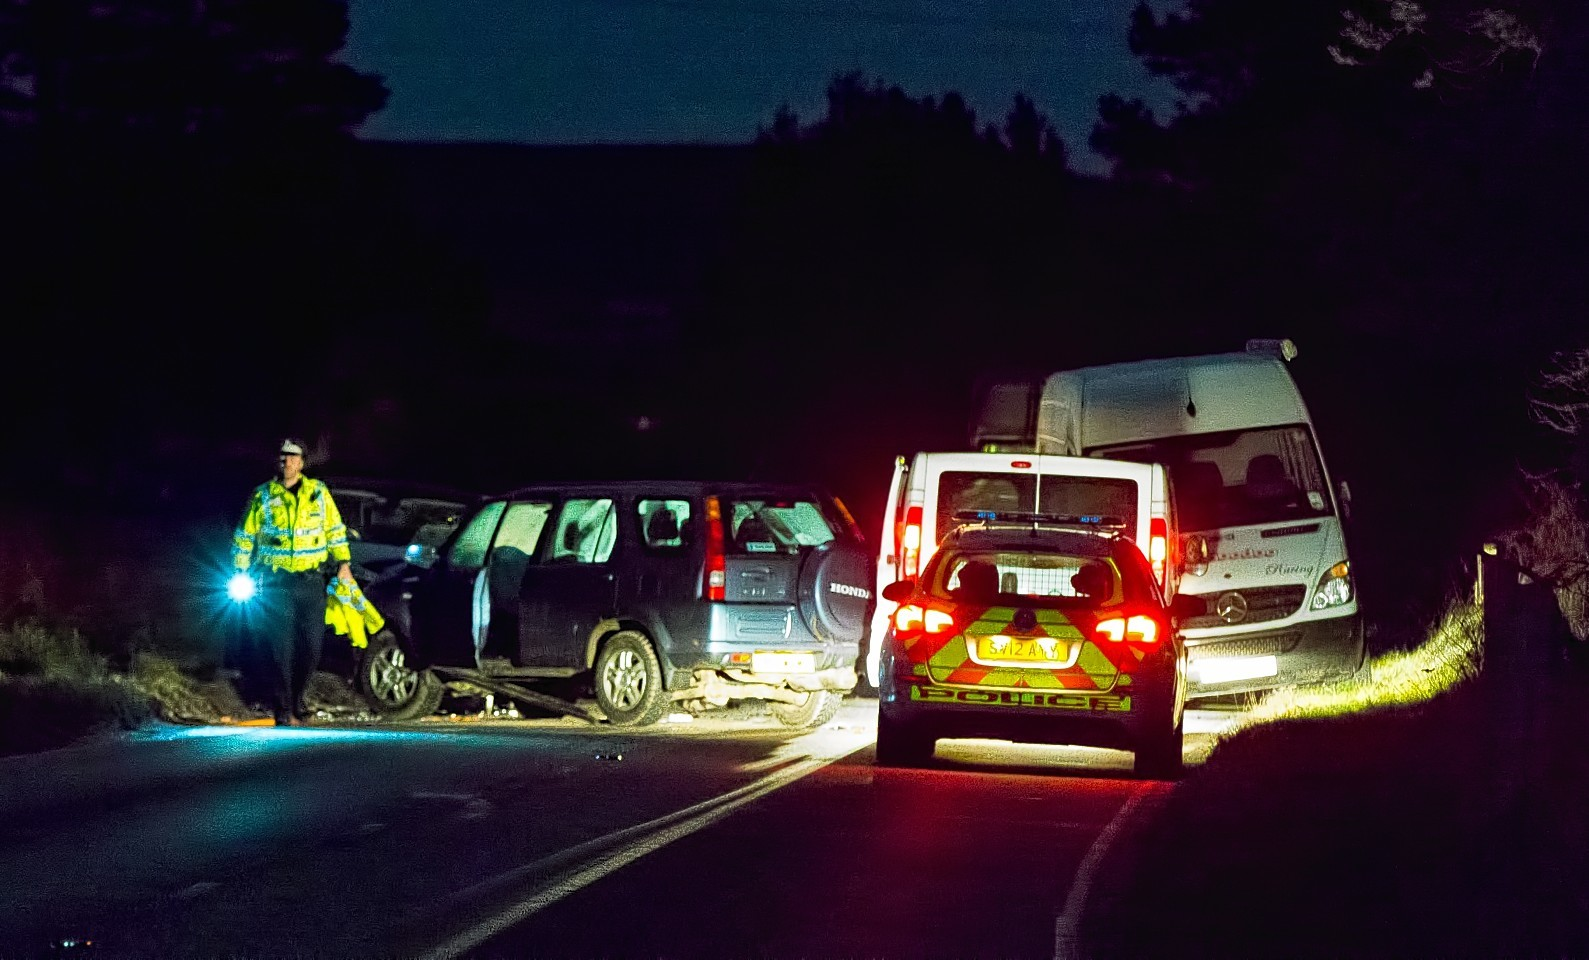 There have been 25 road crash fatalities in Aberdeenshire and Moray since April 1